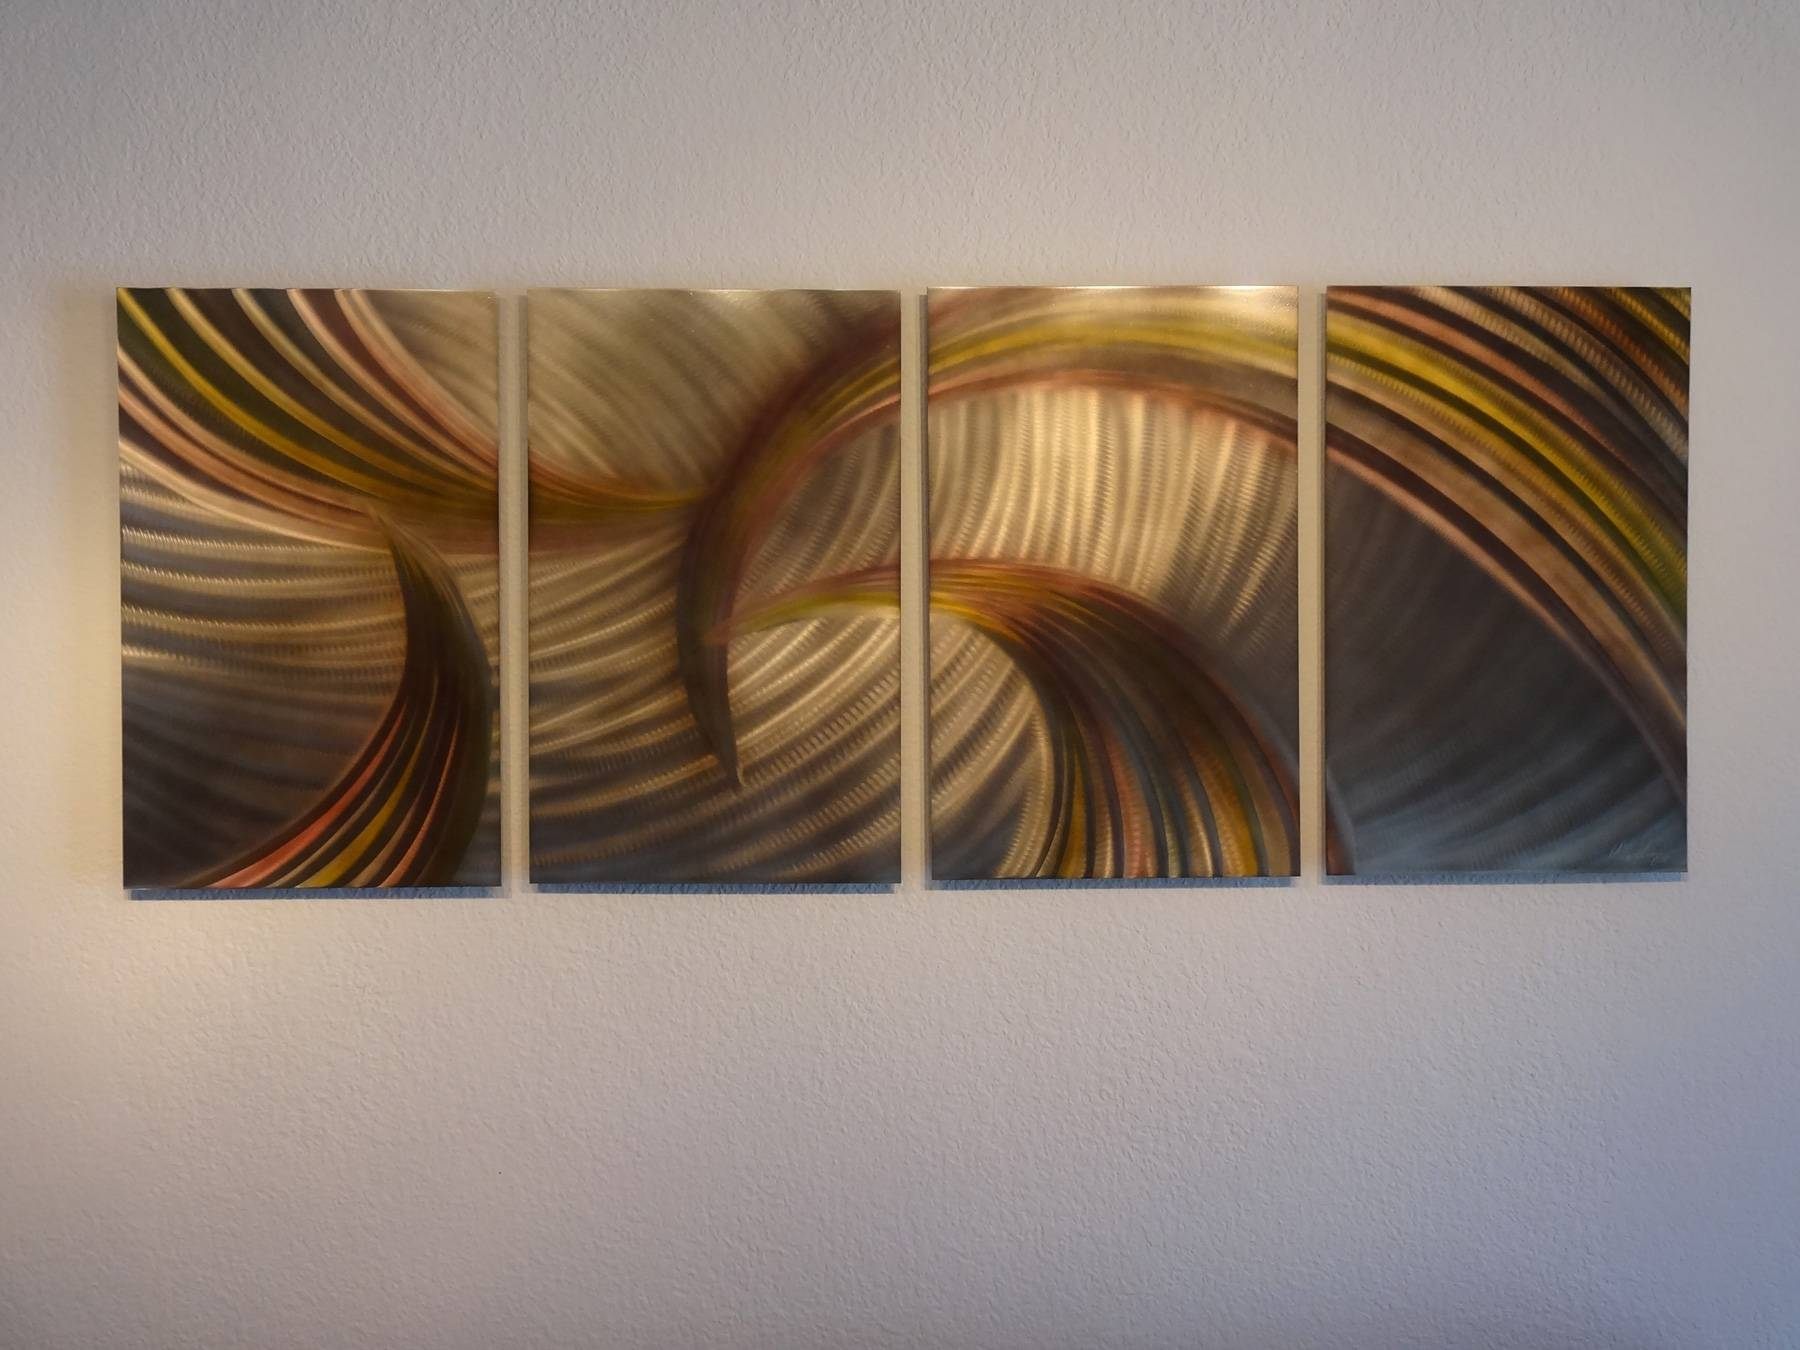 Tempest Bronze – Abstract Metal Wall Art Contemporary Modern Decor Pertaining To Most Current Bronze Metal Wall Art (View 4 of 20)